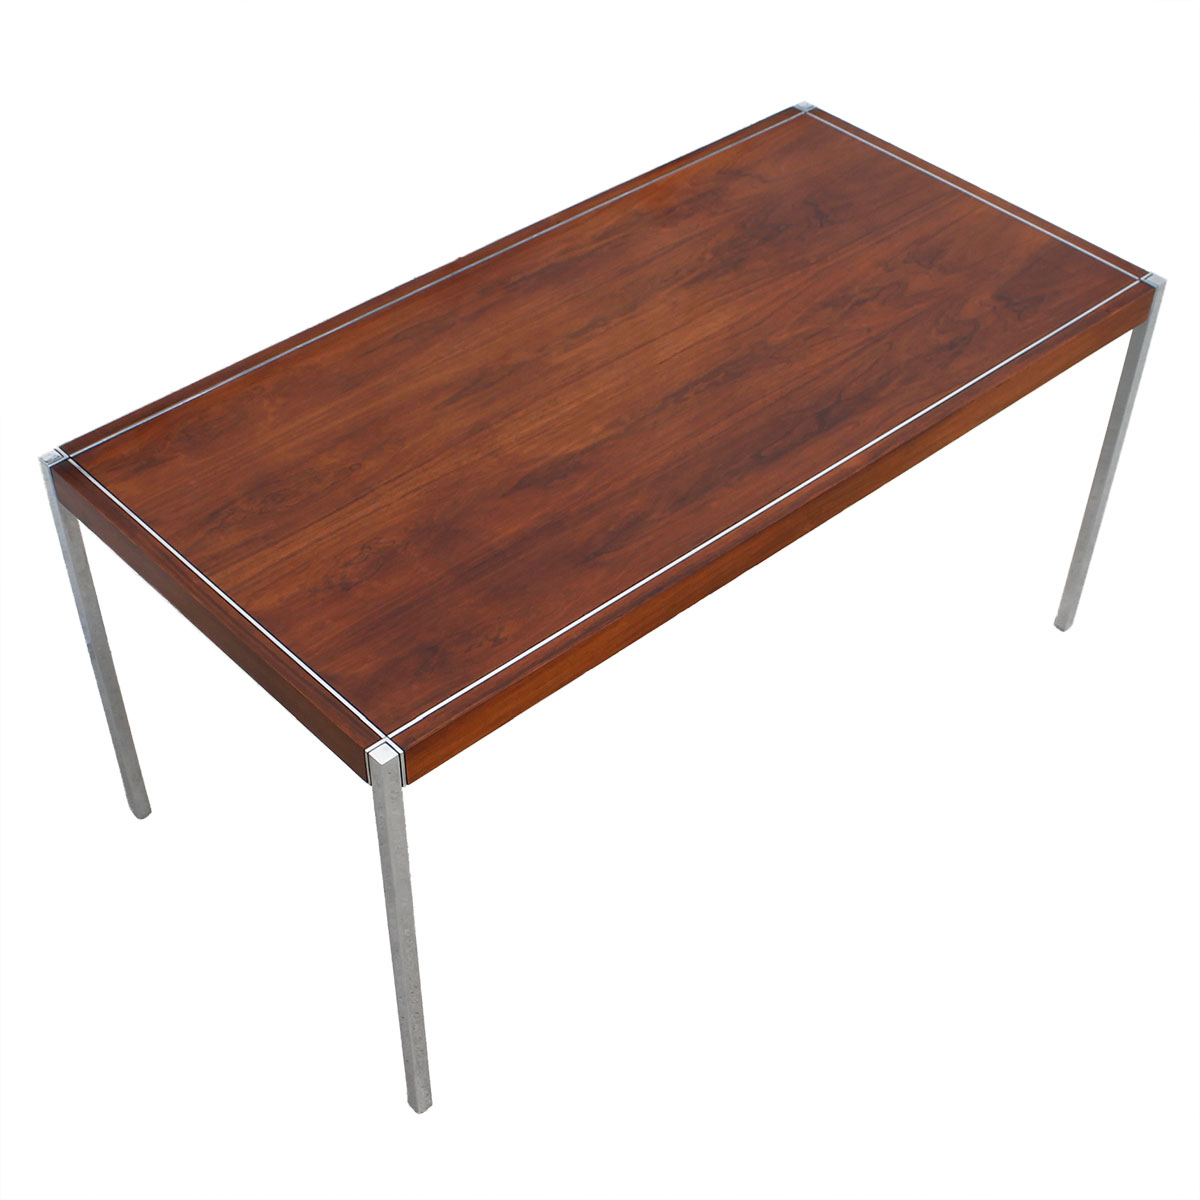 Richard Schultz for Knoll Int'l — Rosewood & Chrome Desk / Work Table